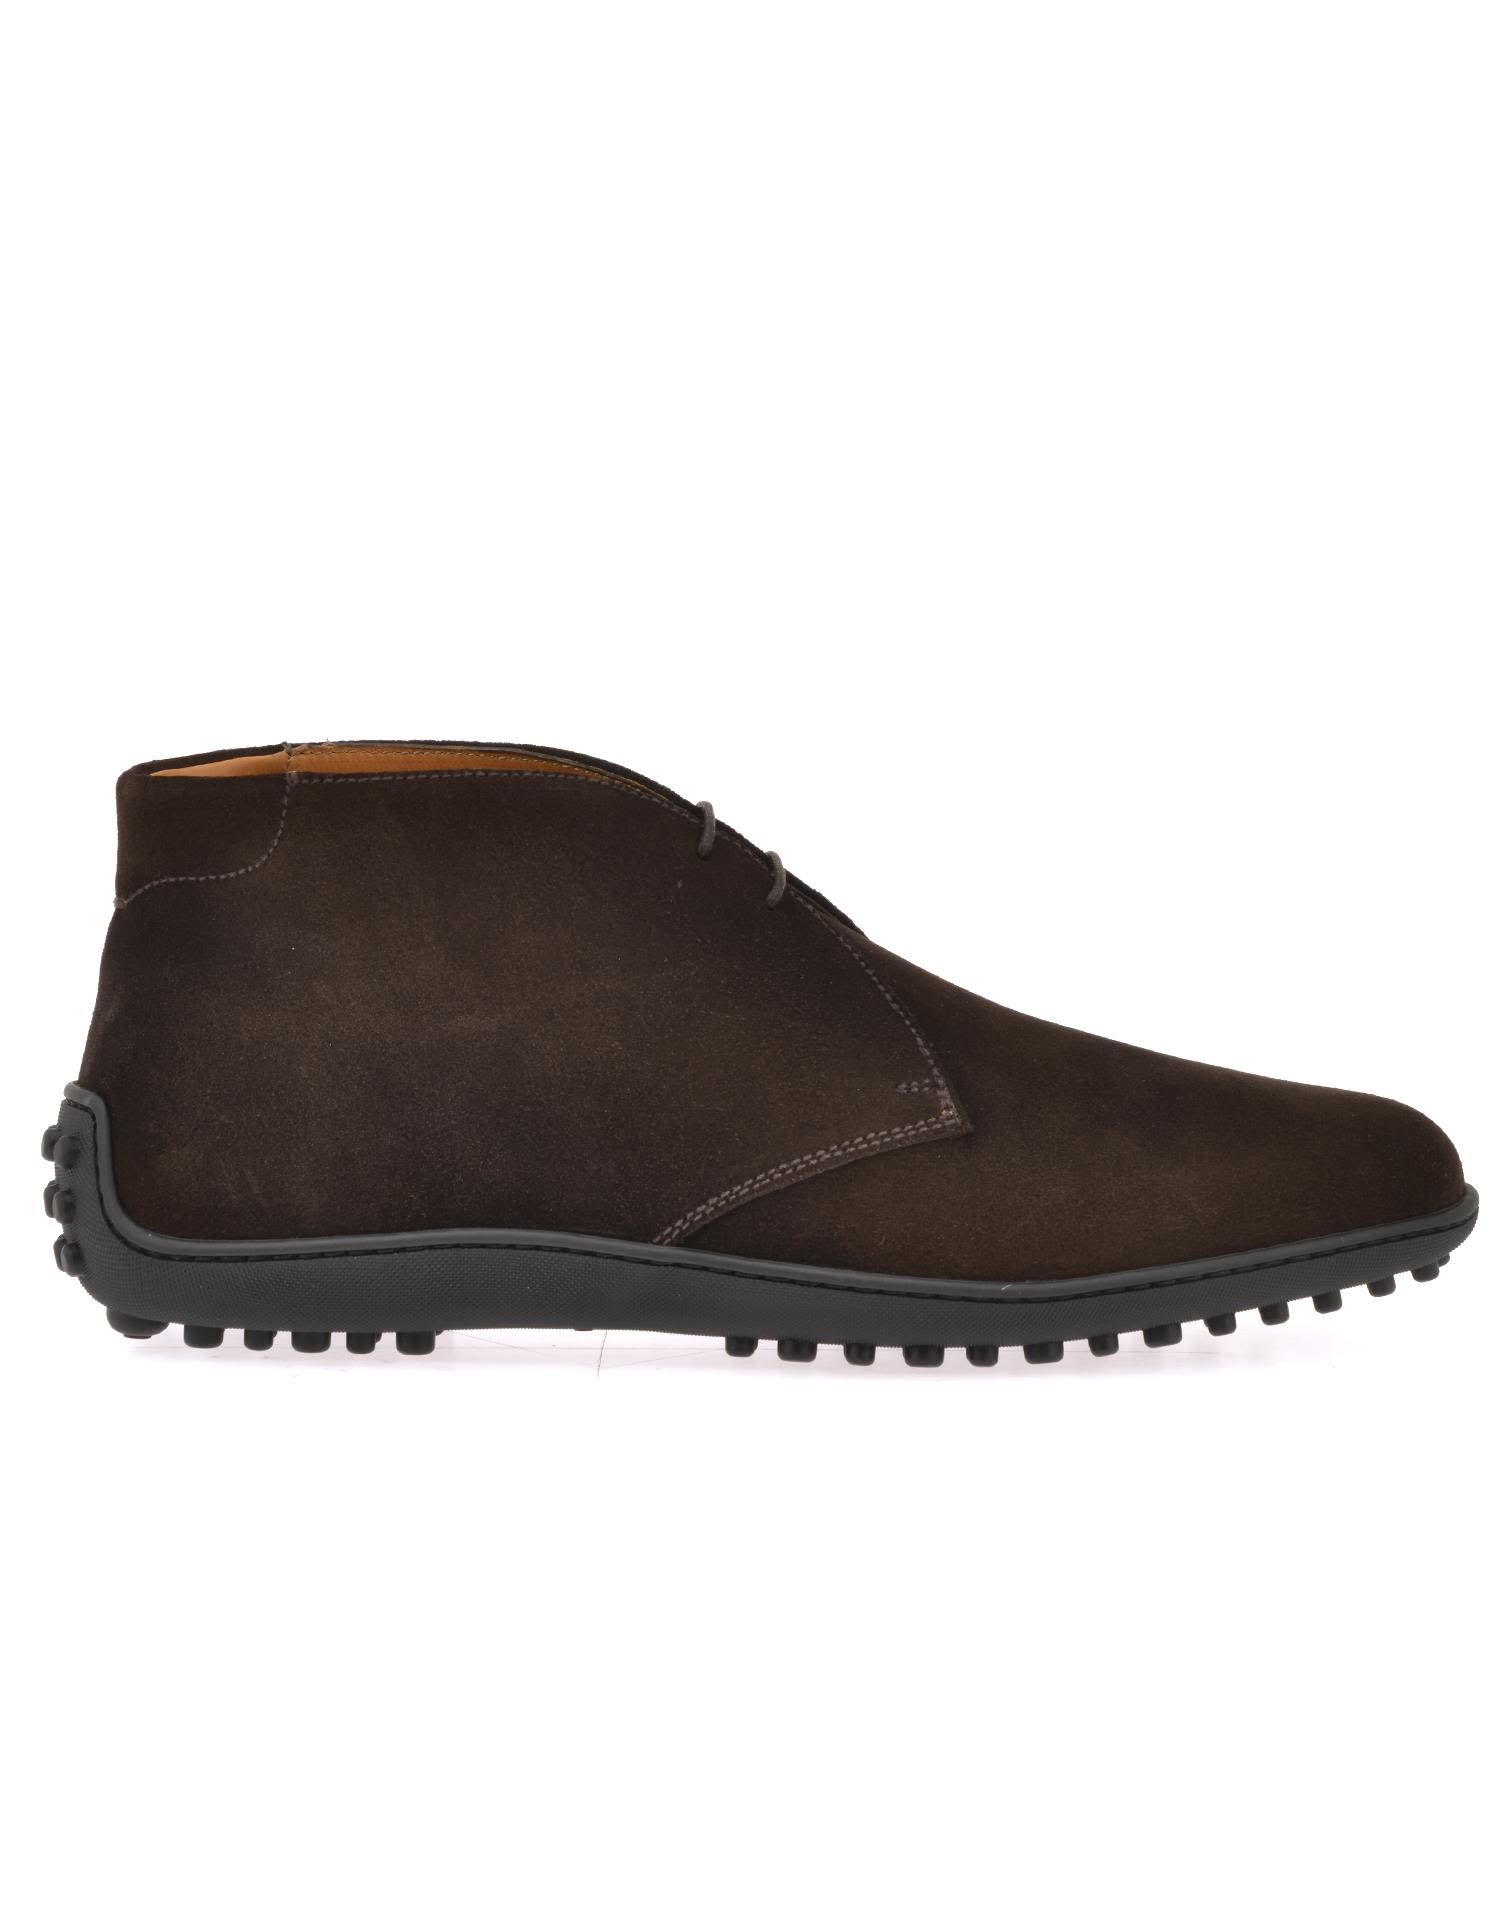 Car Shoe Leather Desert Boot